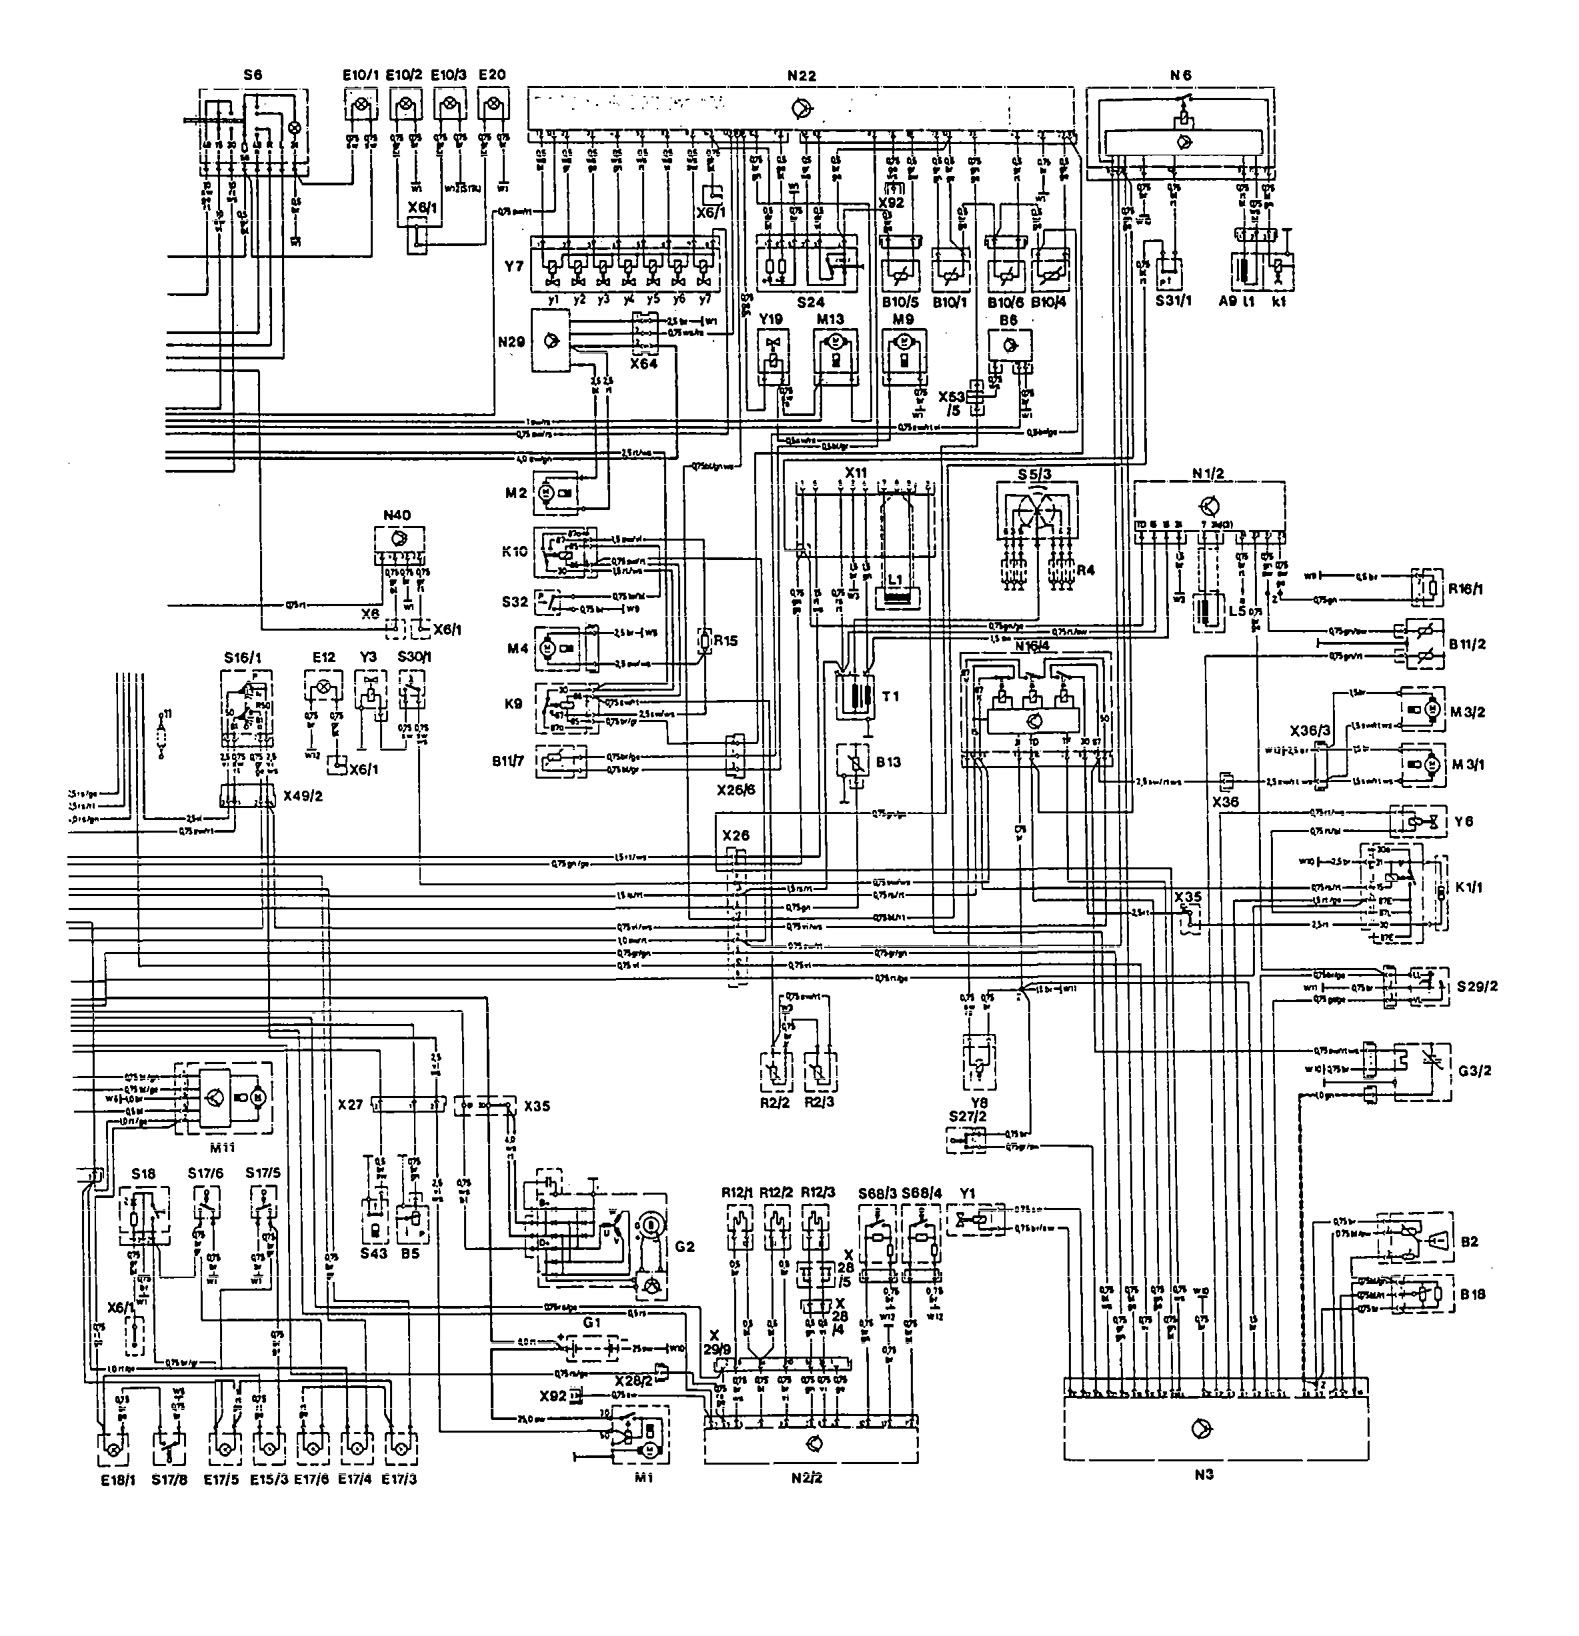 300e Fuse Diagram Free Wiring For You 1986 Mercedes Diagrams Benz Schematics Change Your Idea With Rh Voice Bridgesgi Com Electrical Panel